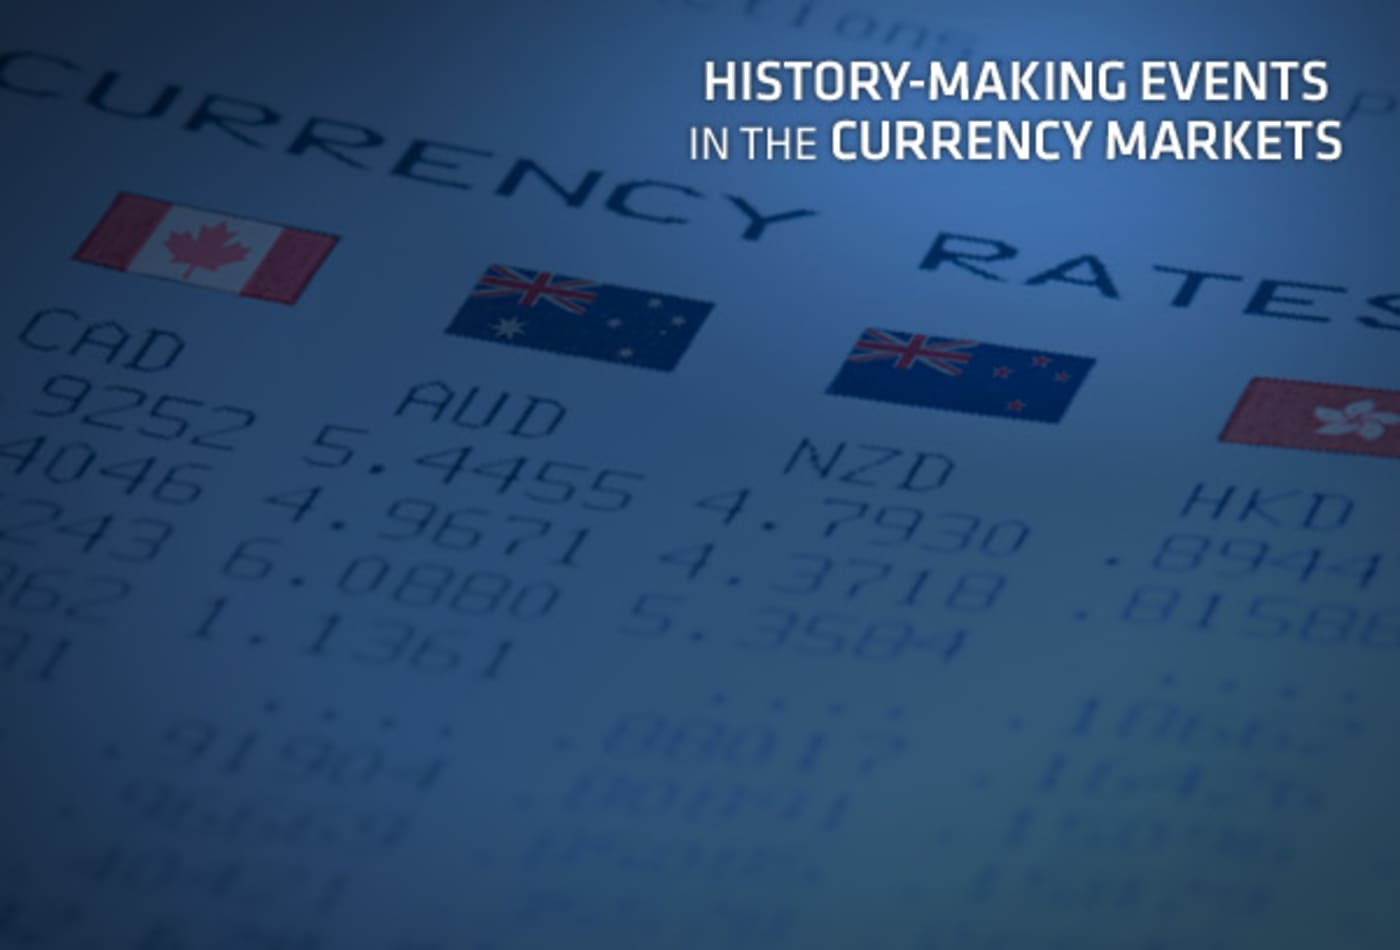 History-Making-Events-Currency-Markets-cover.jpg